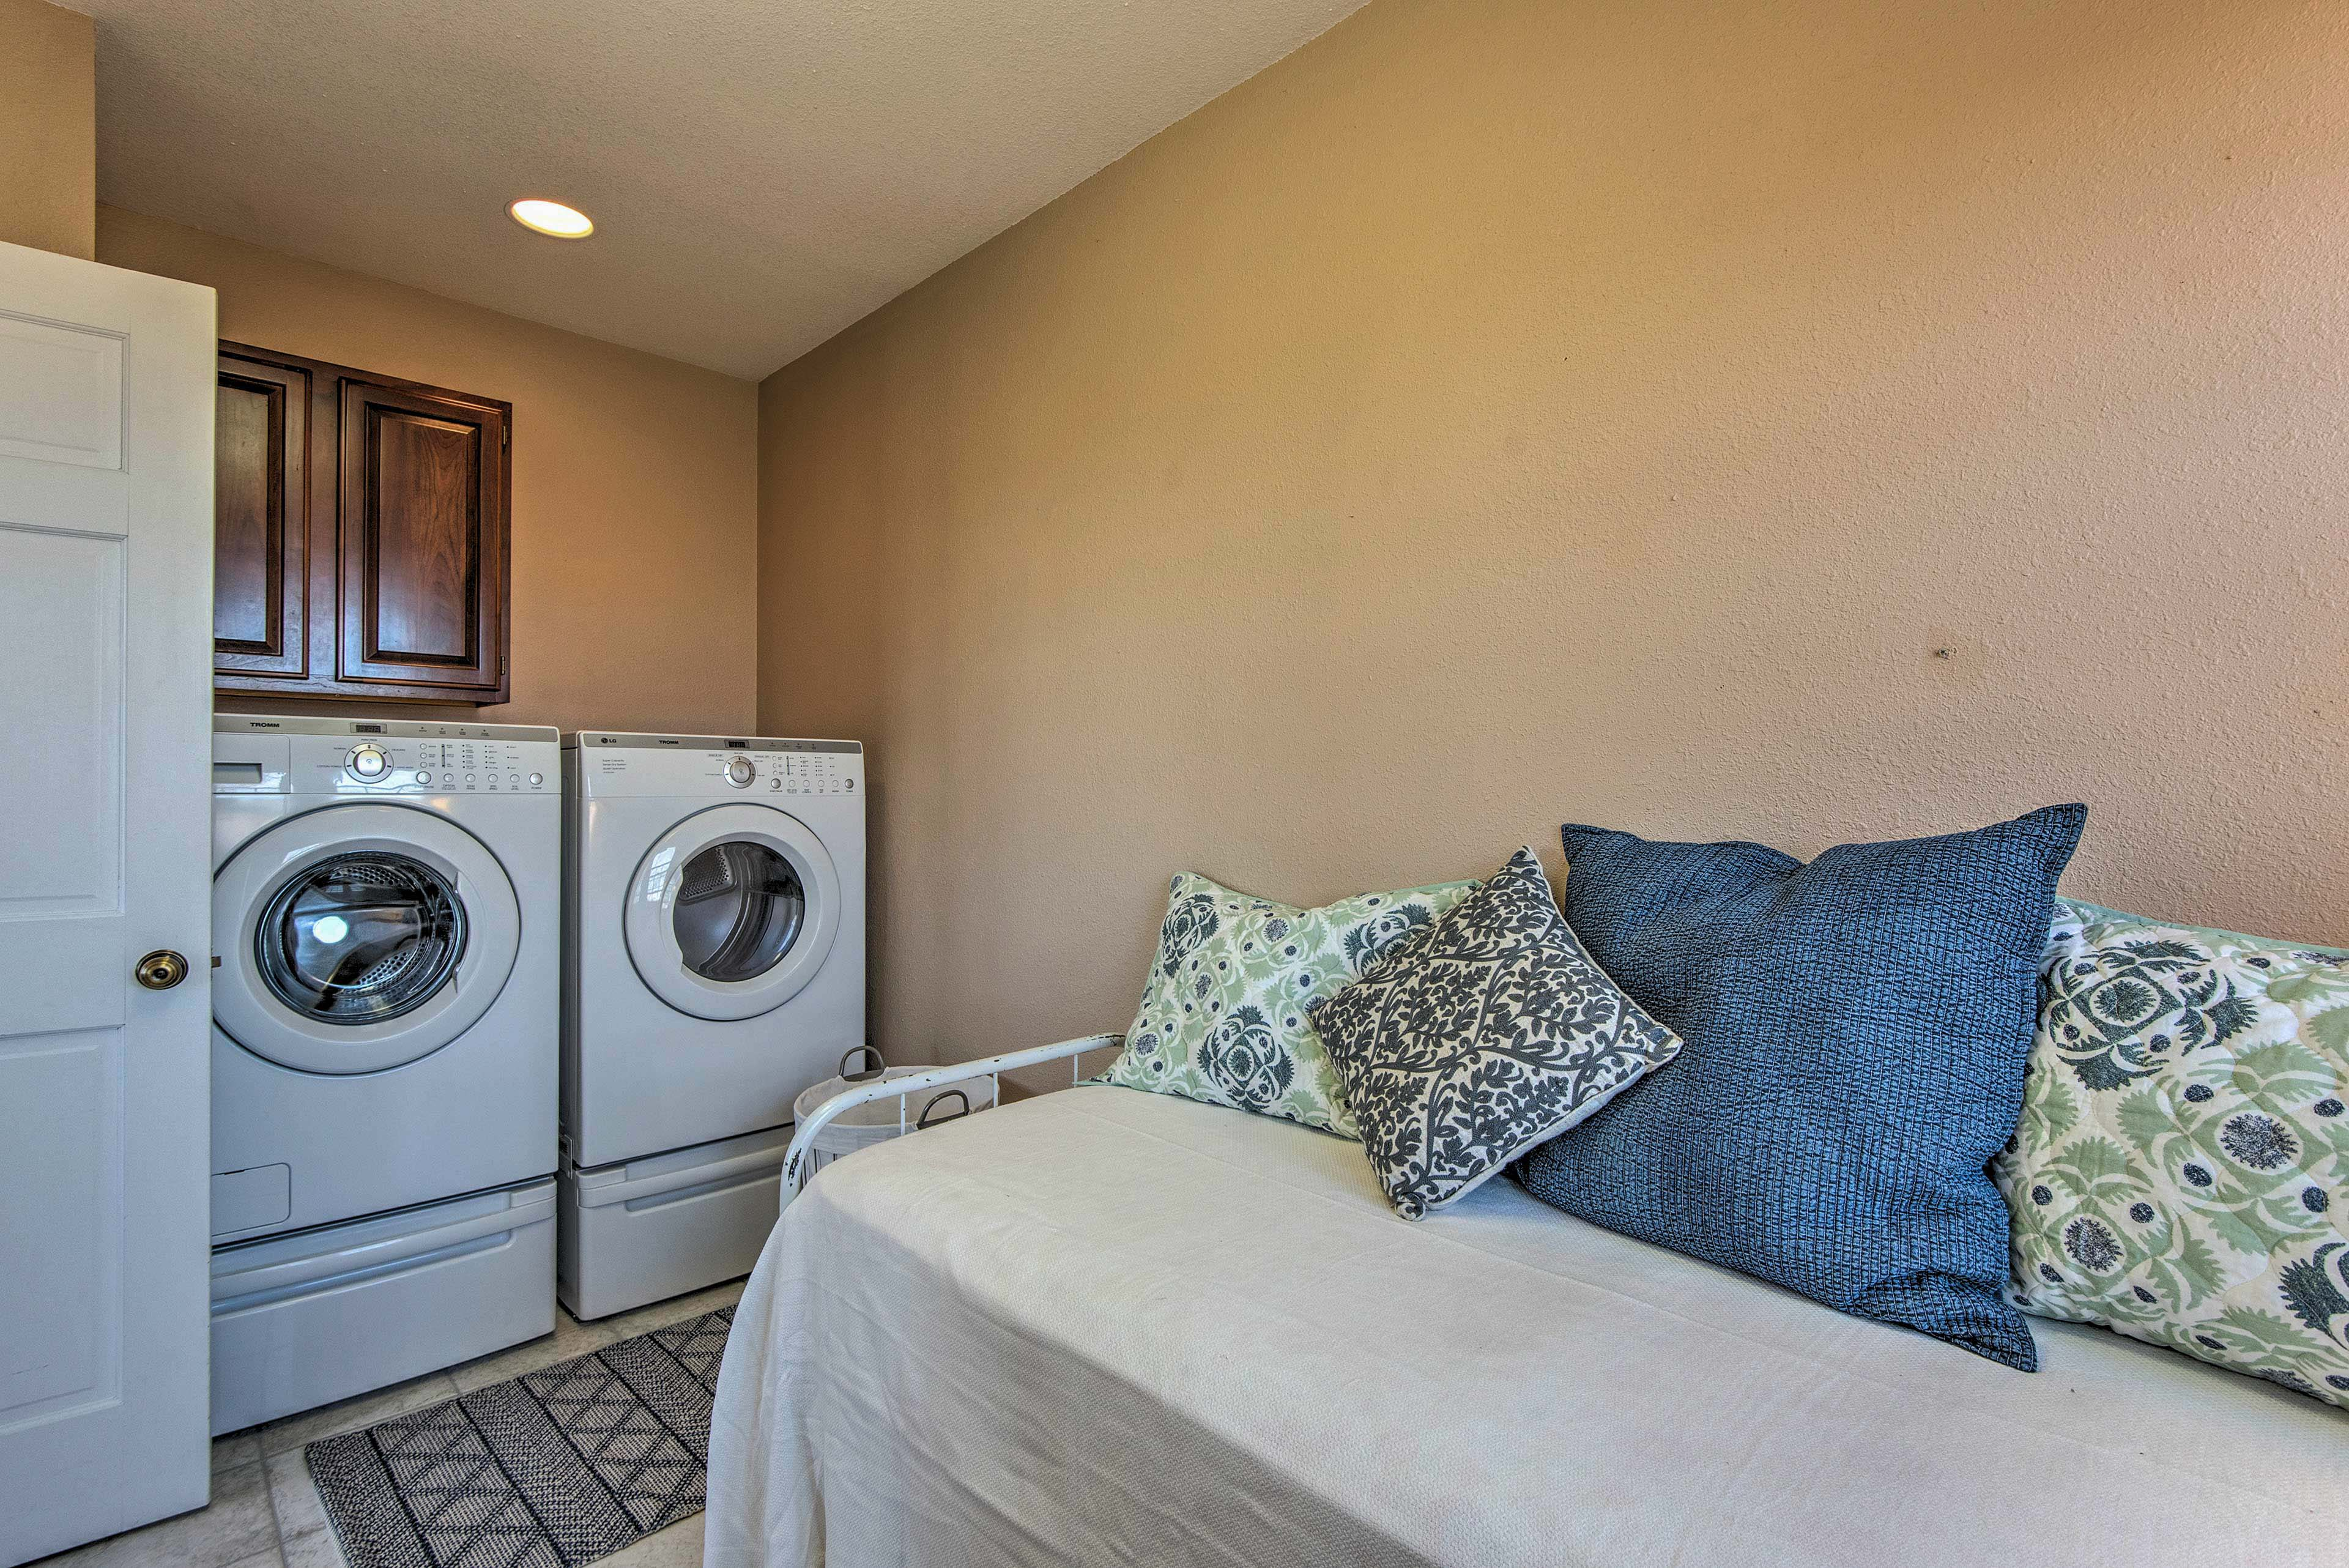 Keep your clothes fresh and clean with the washer and dryer!